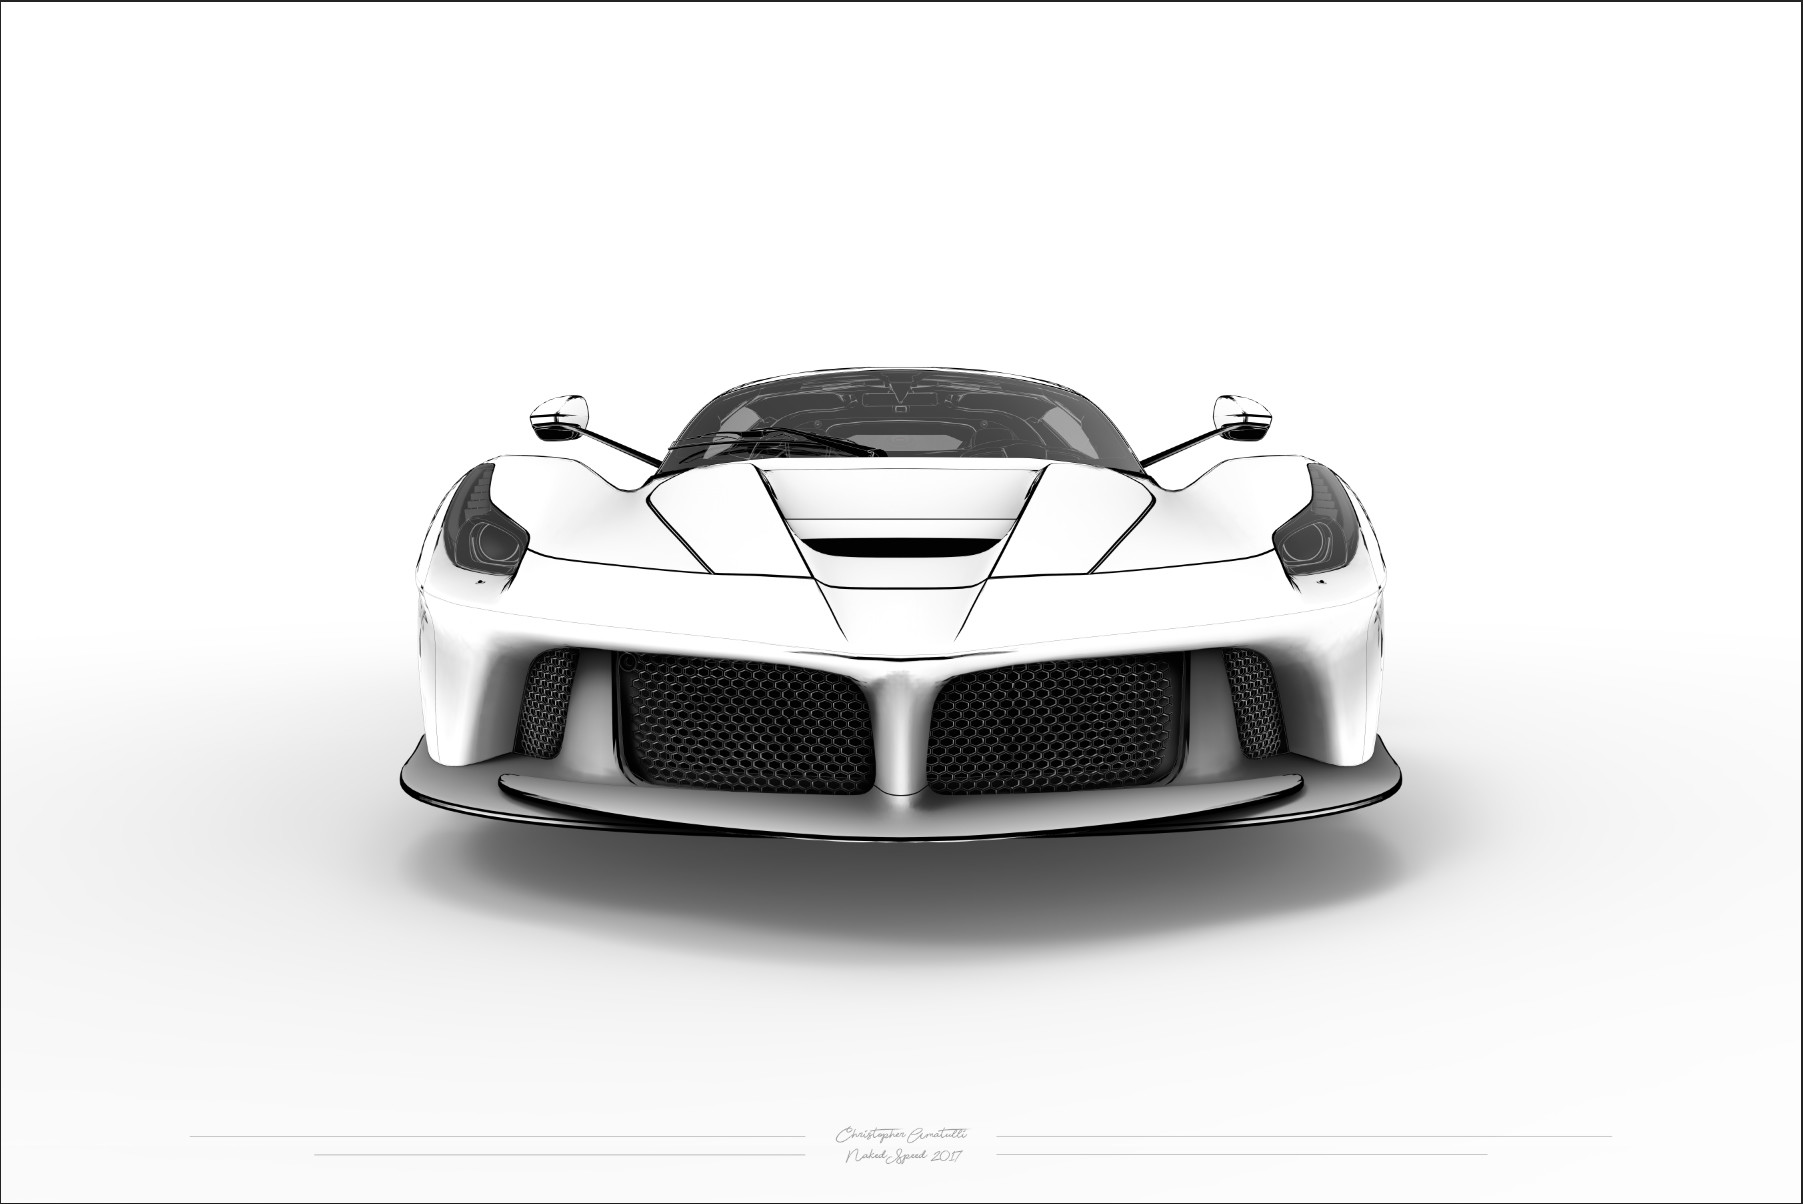 Chris amatulli laferrari